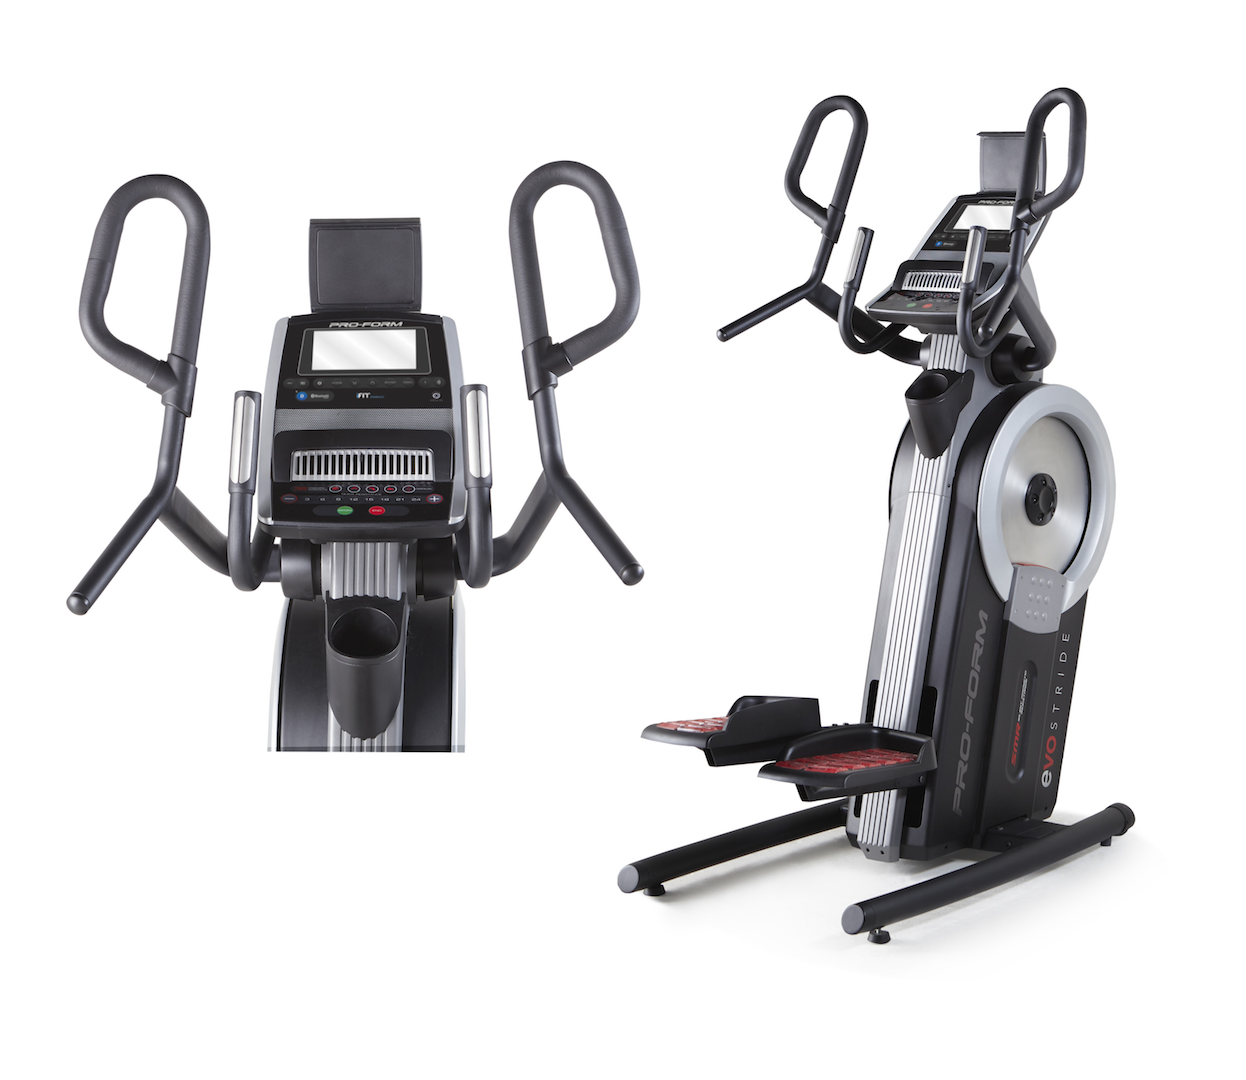 Proform Power Sensitive 7 0 Exercise Bike: Equipment Owned By Josh Nuckles (joshn)